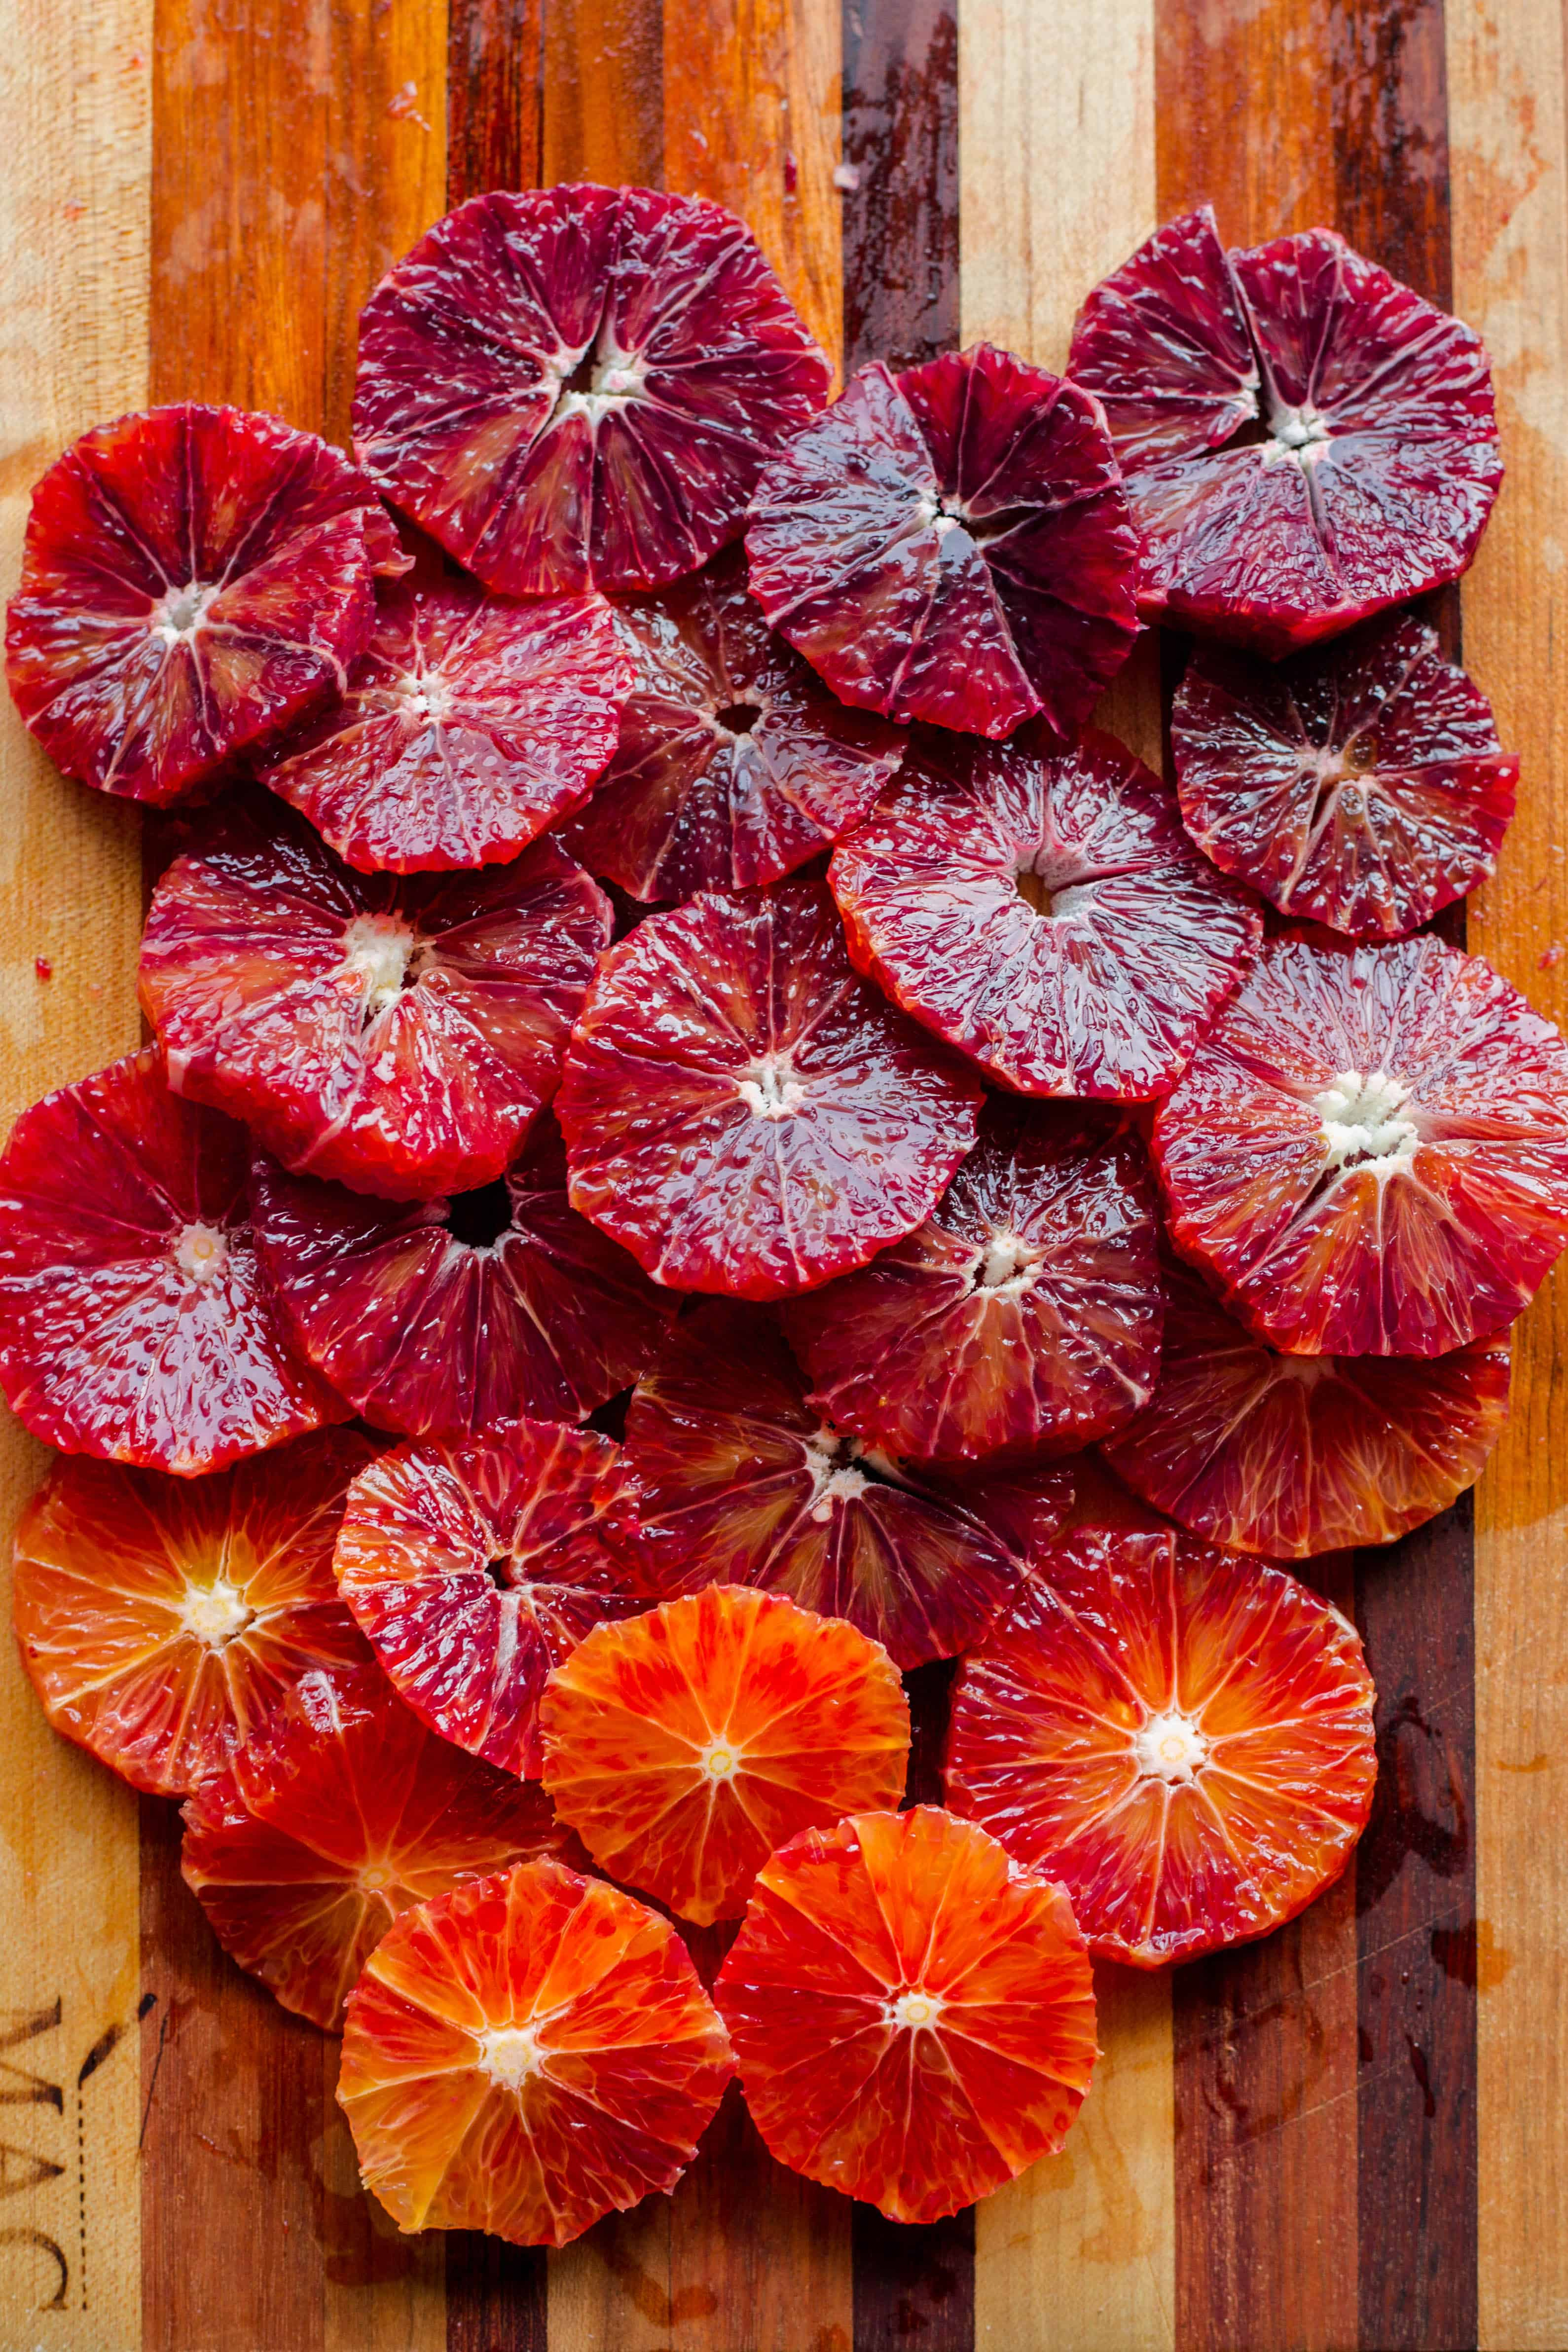 Thin cross sections of blood oranges covering a wood cutting board.